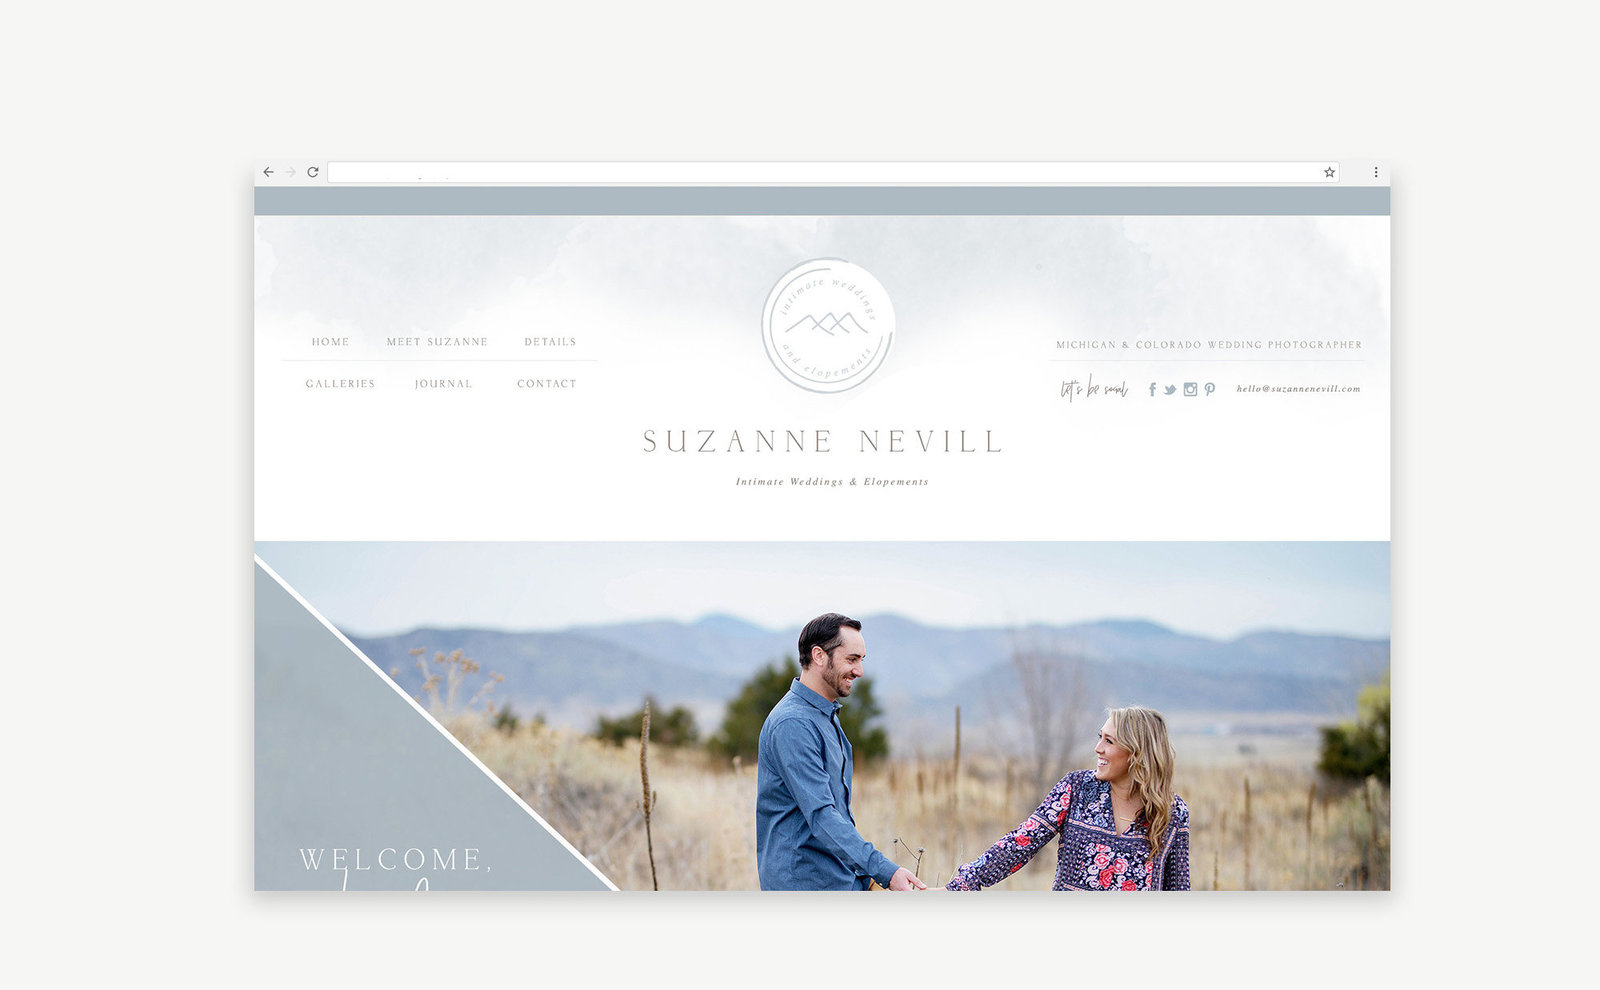 website-design-photographer-web-design-custom-showit5-colorado-wedding-photographer-suzanne-nevill-01